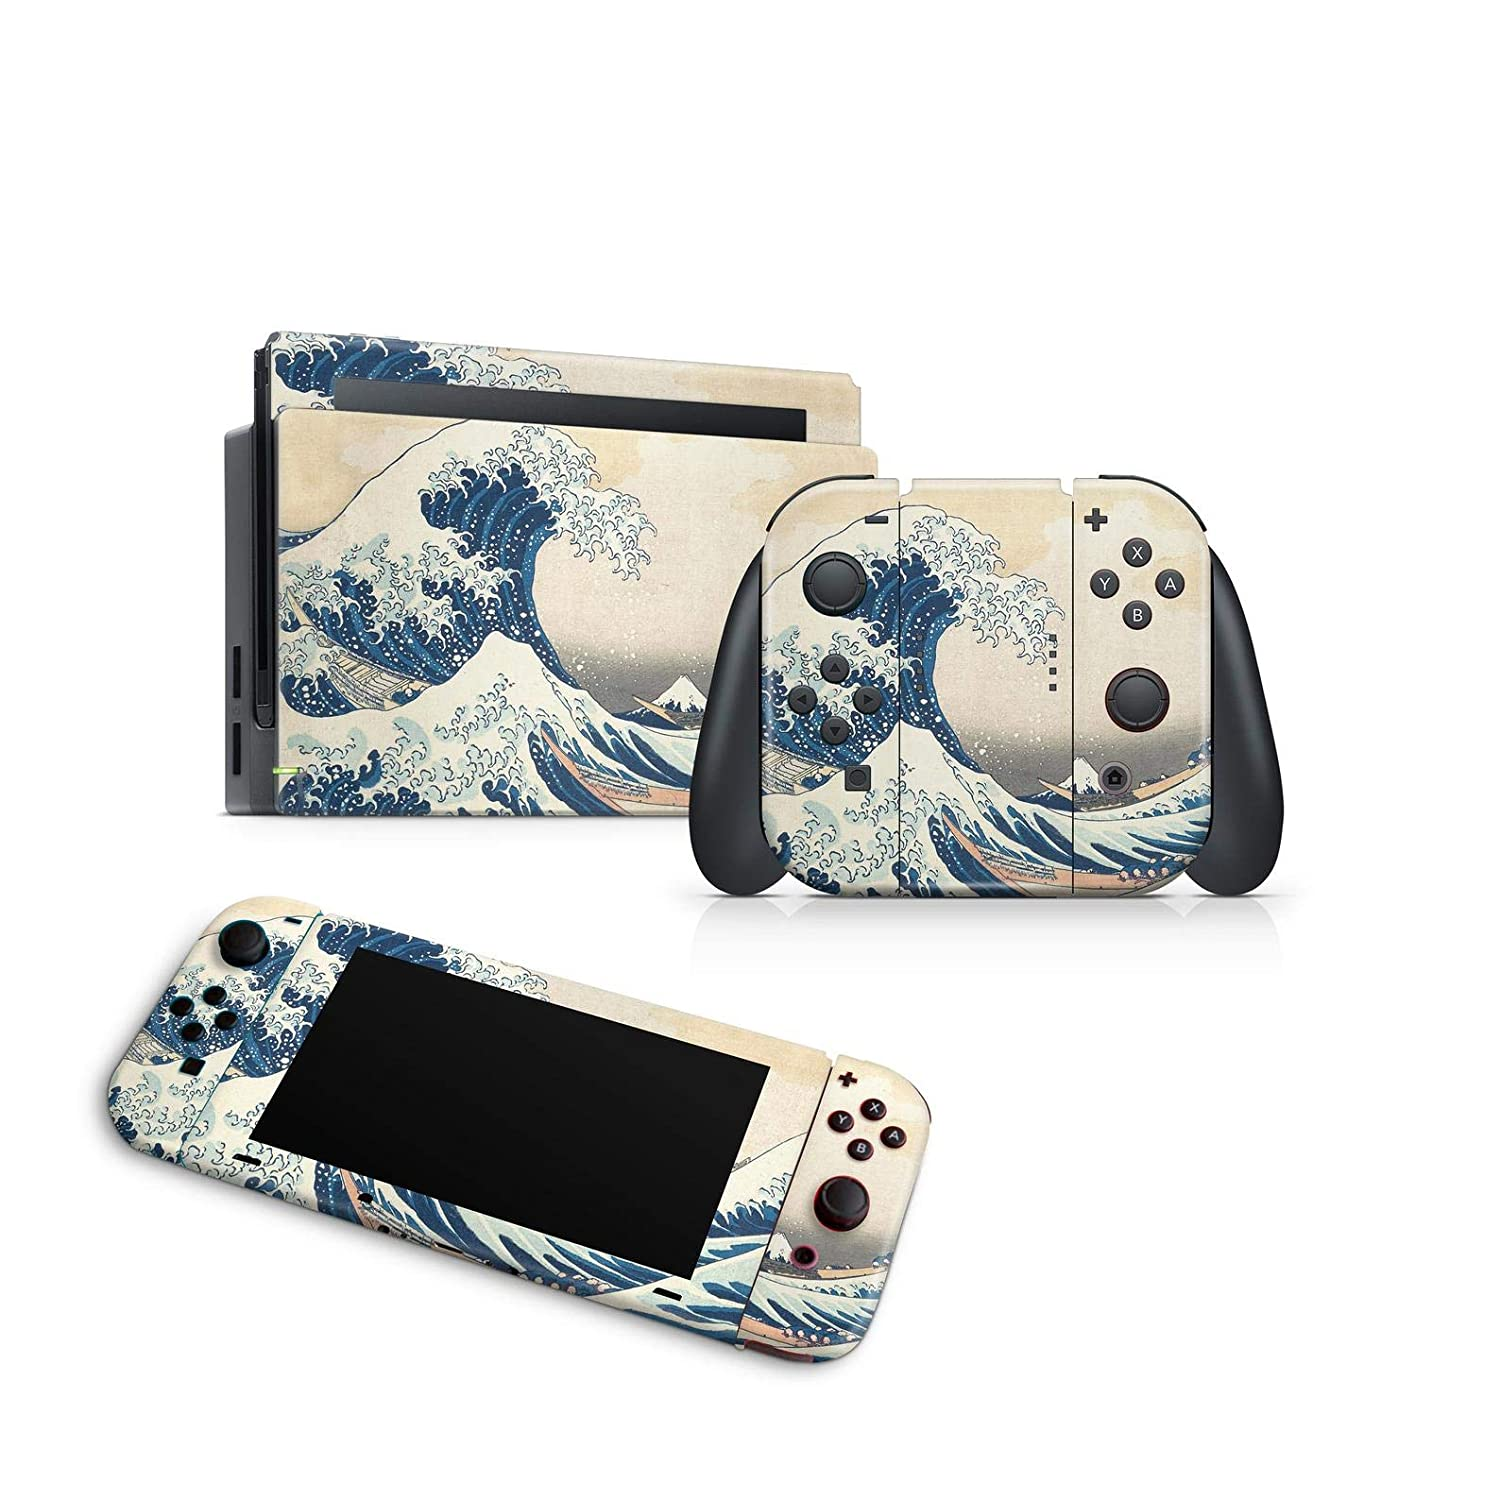 ZOOMHITSKINS Art Asian Wave Storm Surge Ripple Ocean Stream Hurricane Japan, High Quality Decal Sticker Wrap, Nintendo Switch Compatible, Made in the USA